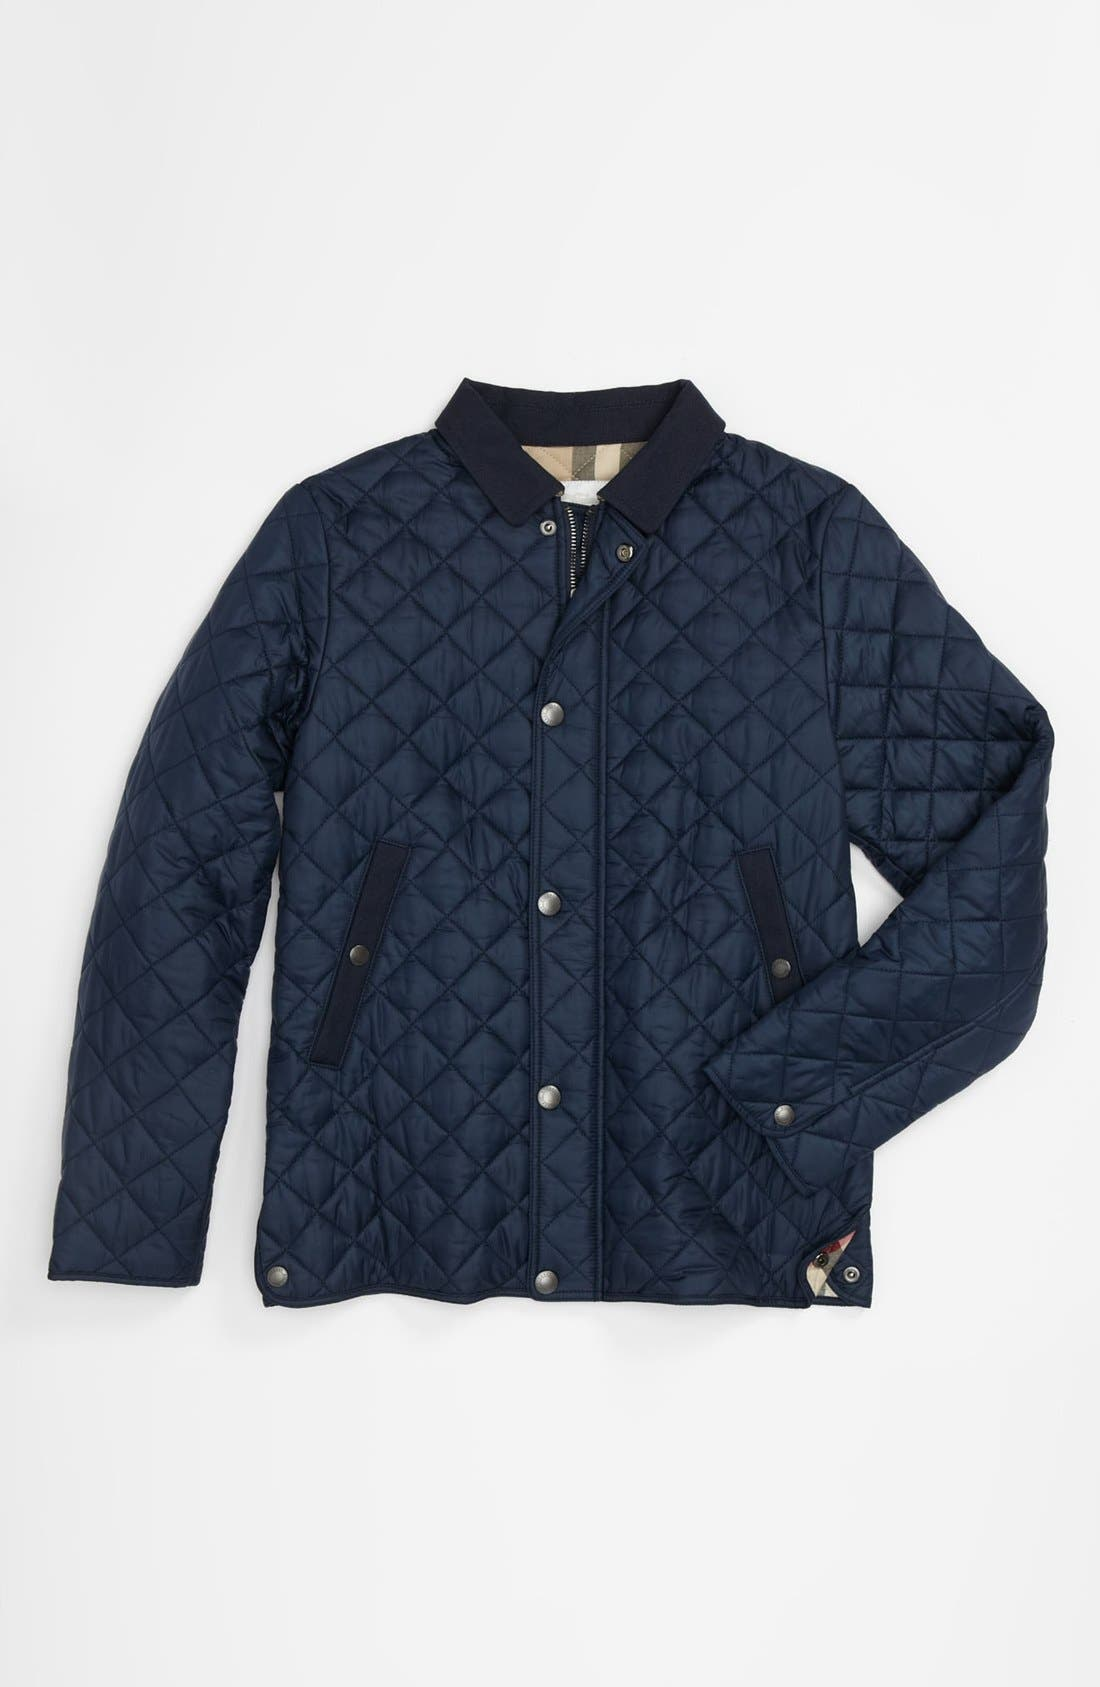 Alternate Image 1 Selected - Burberry 'Luke' Quilted Jacket (Little Boys & Big Boys)